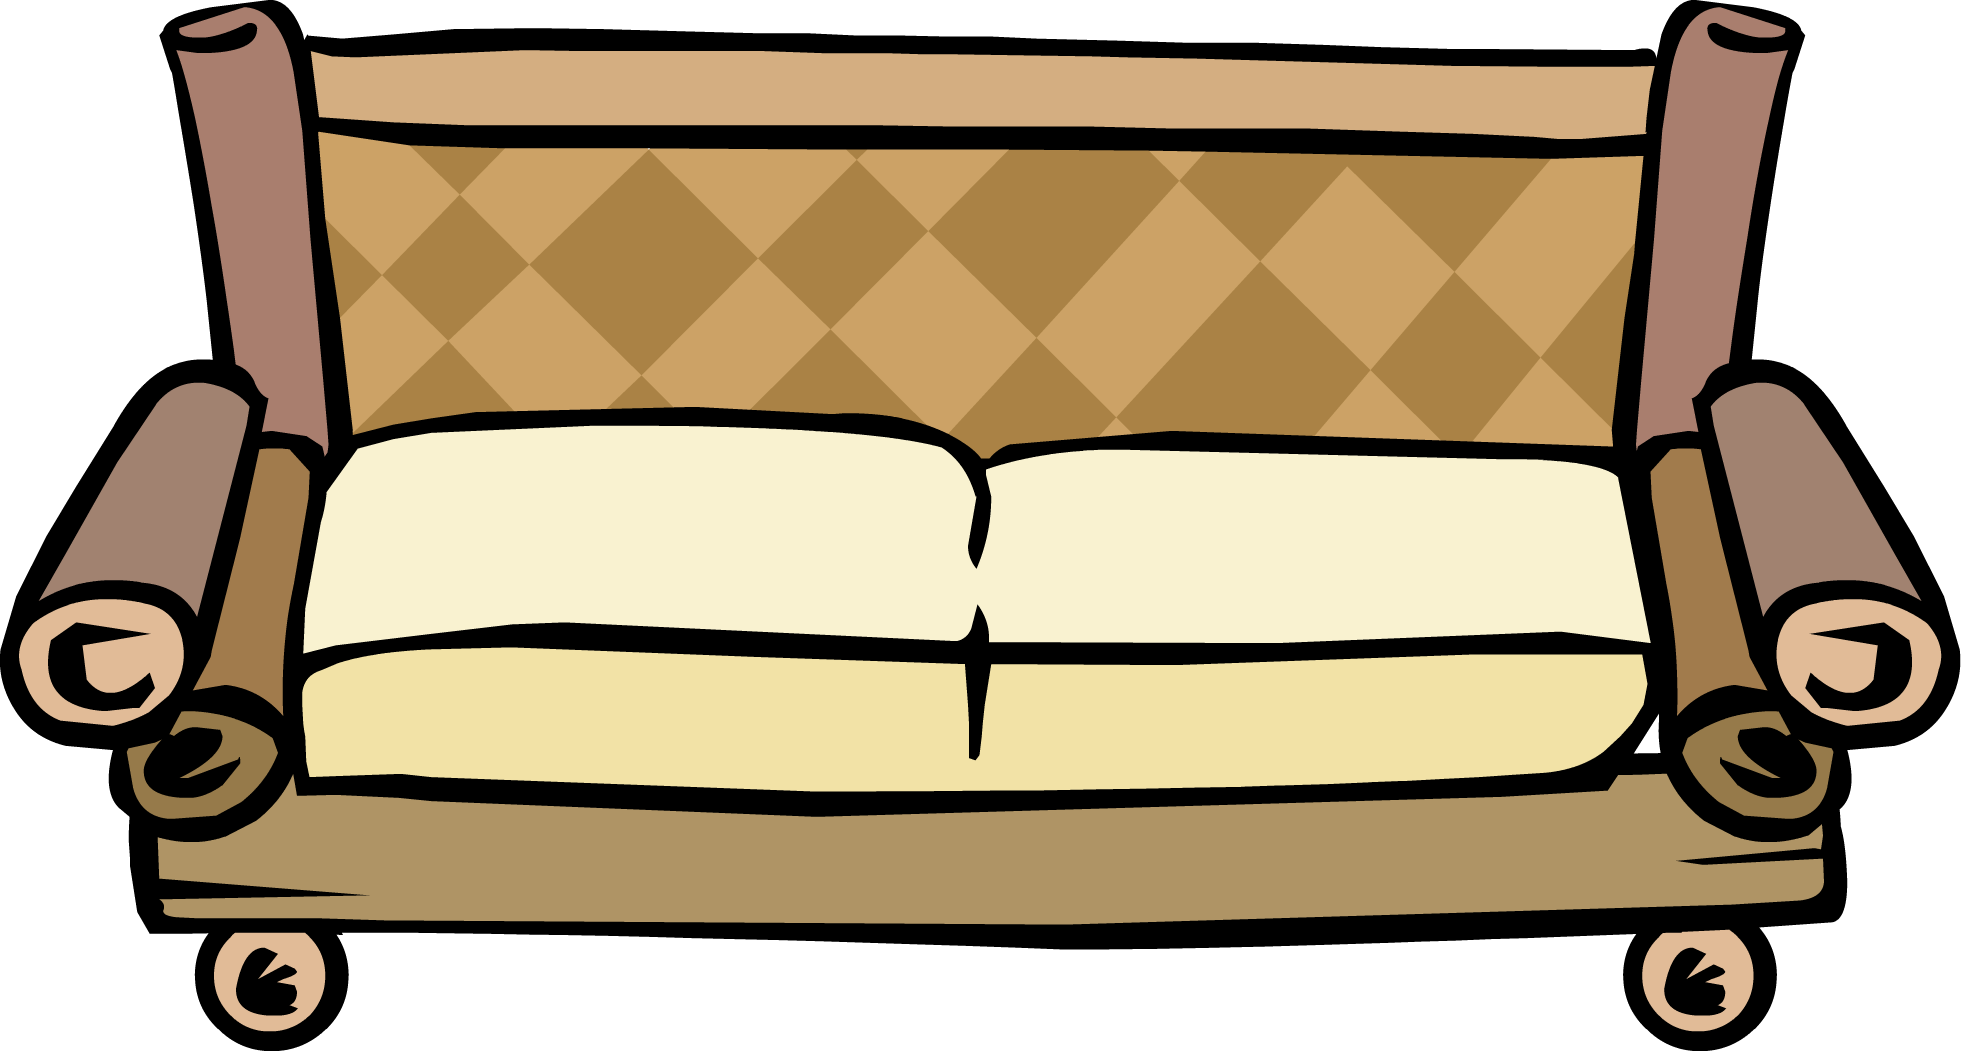 Clipart chair bamboo chair. Couch club penguin wiki